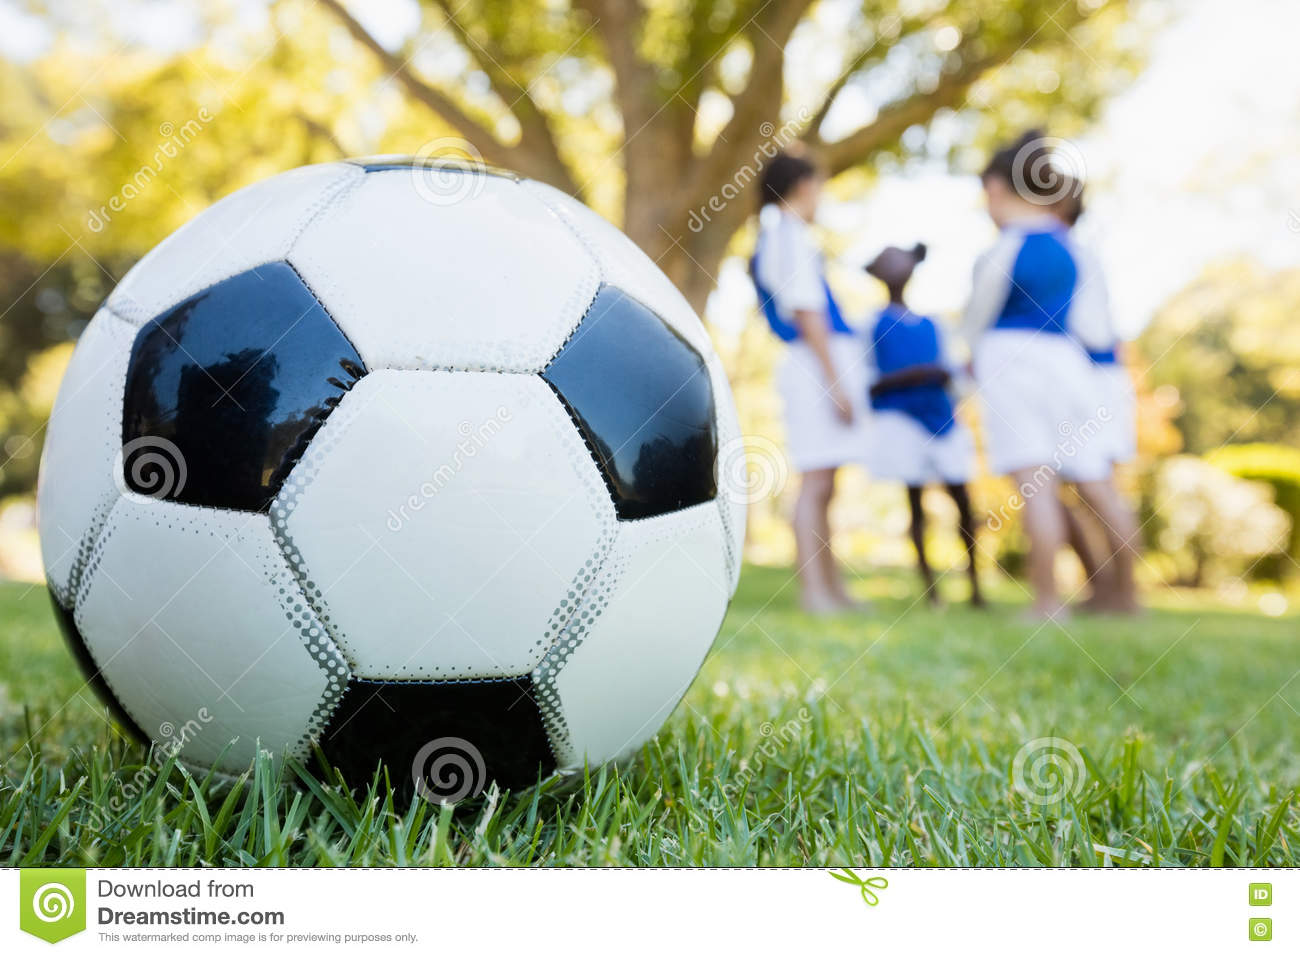 Extreme soccer stock image. Image of funny, extreme, attractive.